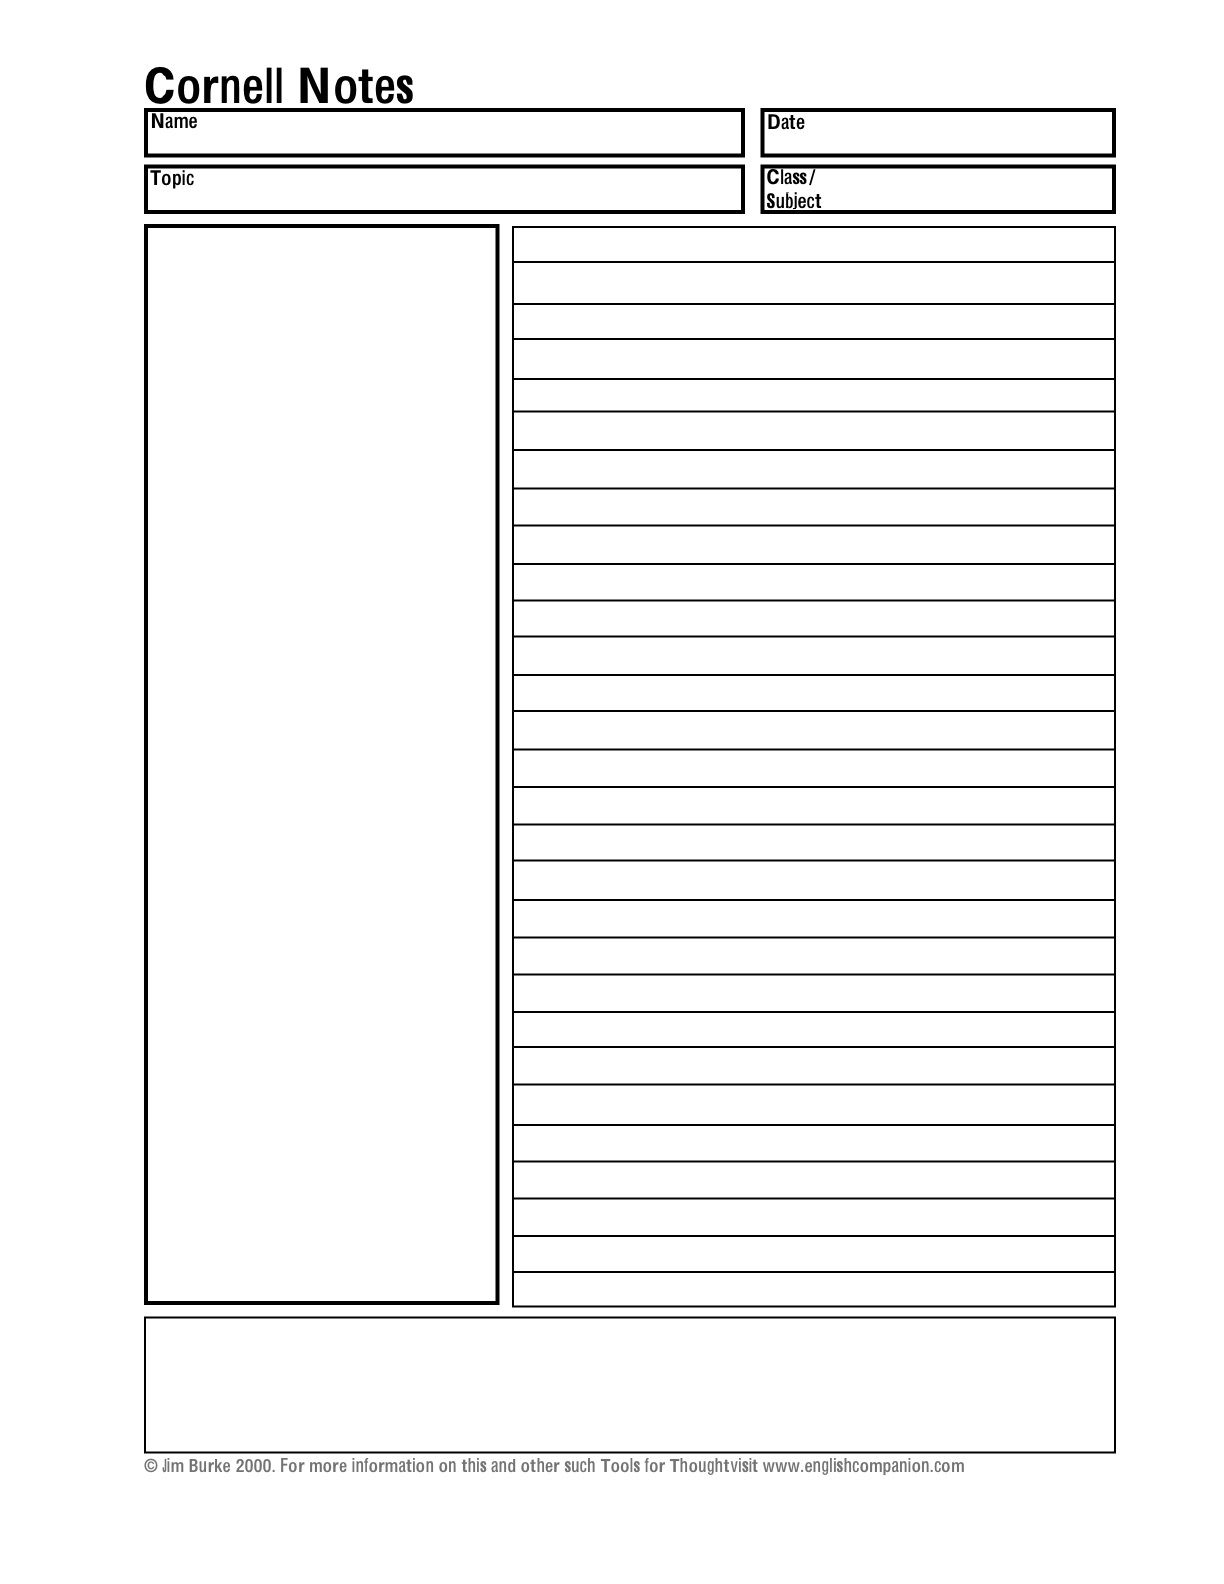 Cornell Notes Basic Pdf Cornell Notes Template Cornell Notes Template Word Cornell Notes